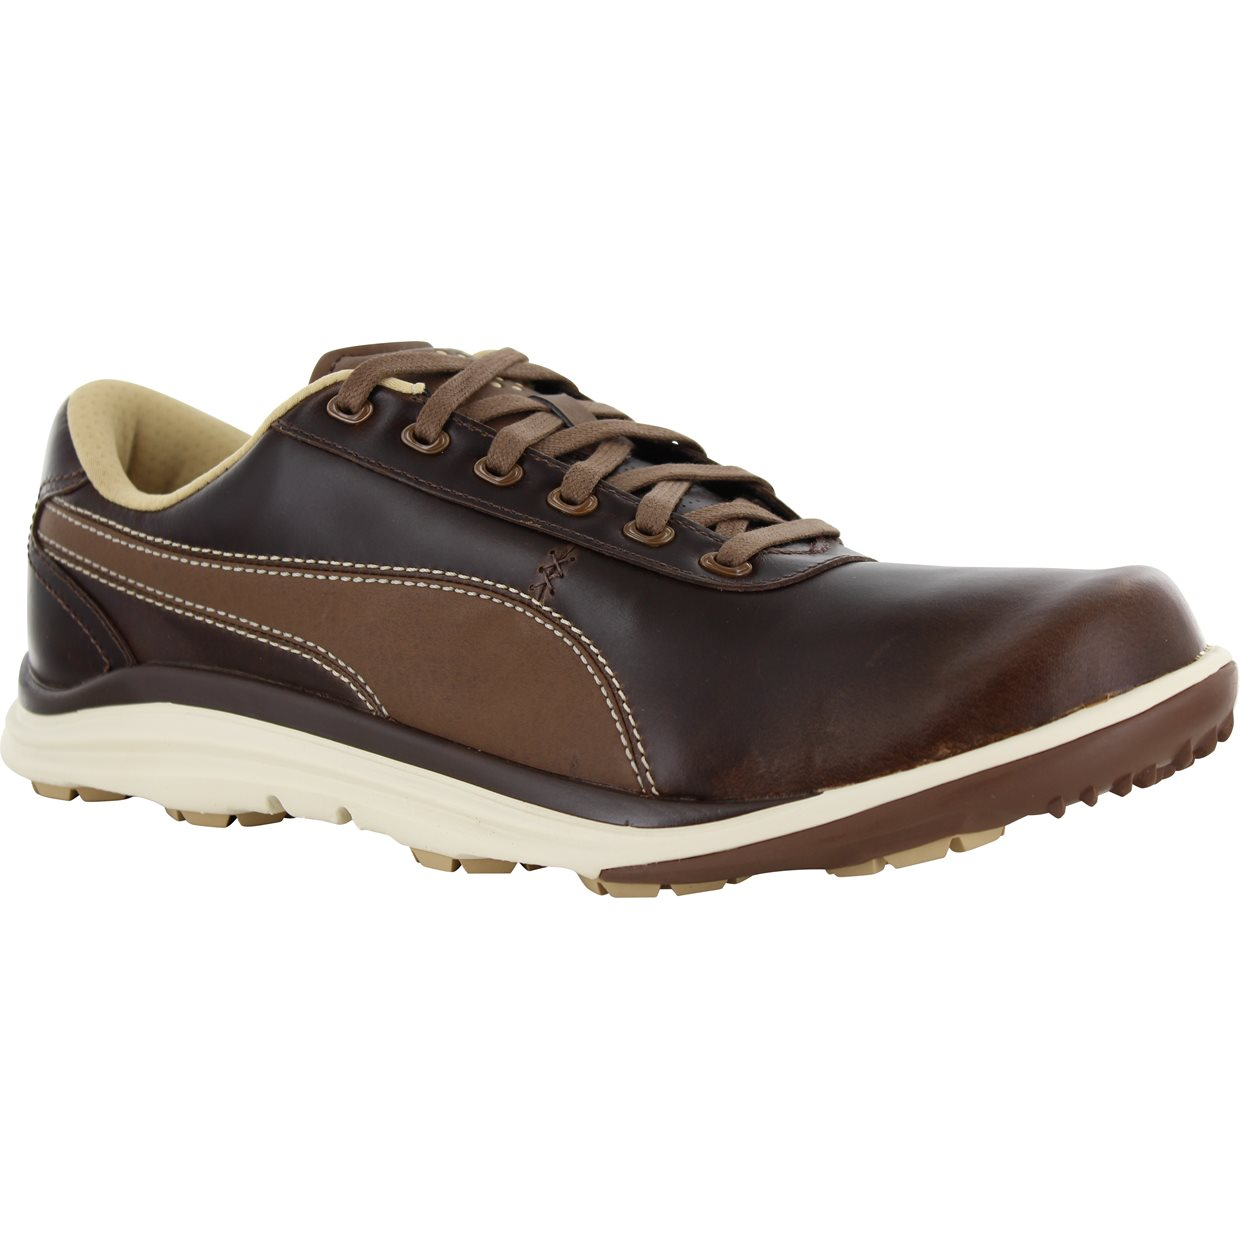 All Brown Golf Shoes